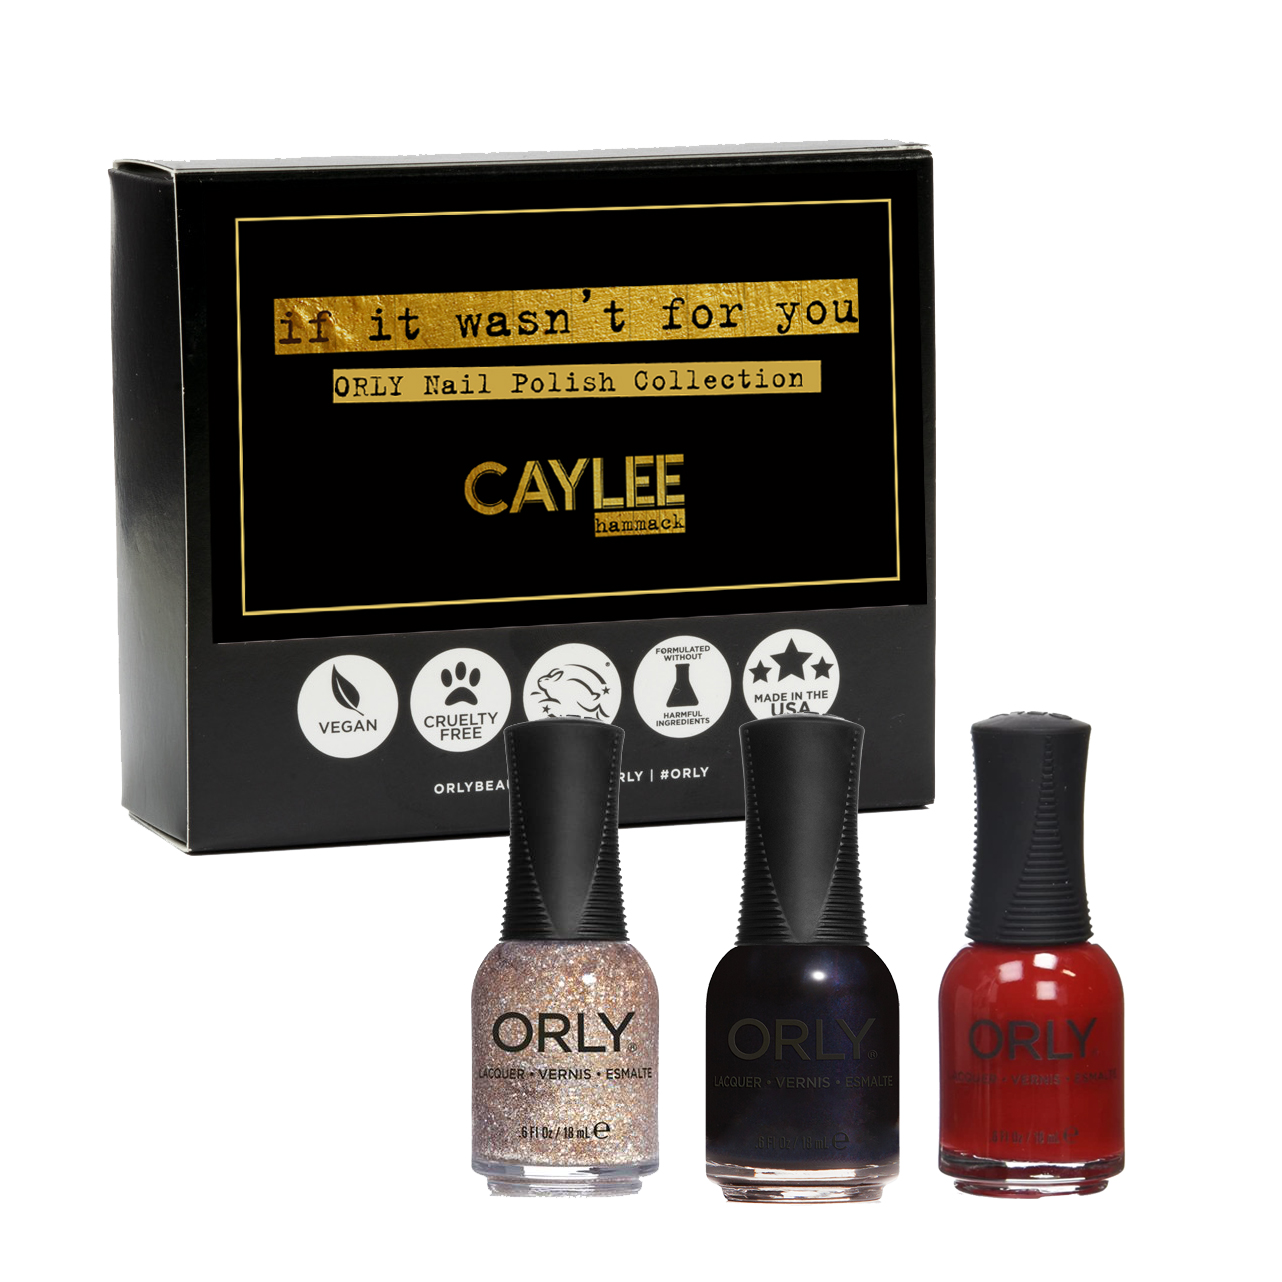 If It Wasn't For You Nail Polish Collection 2: